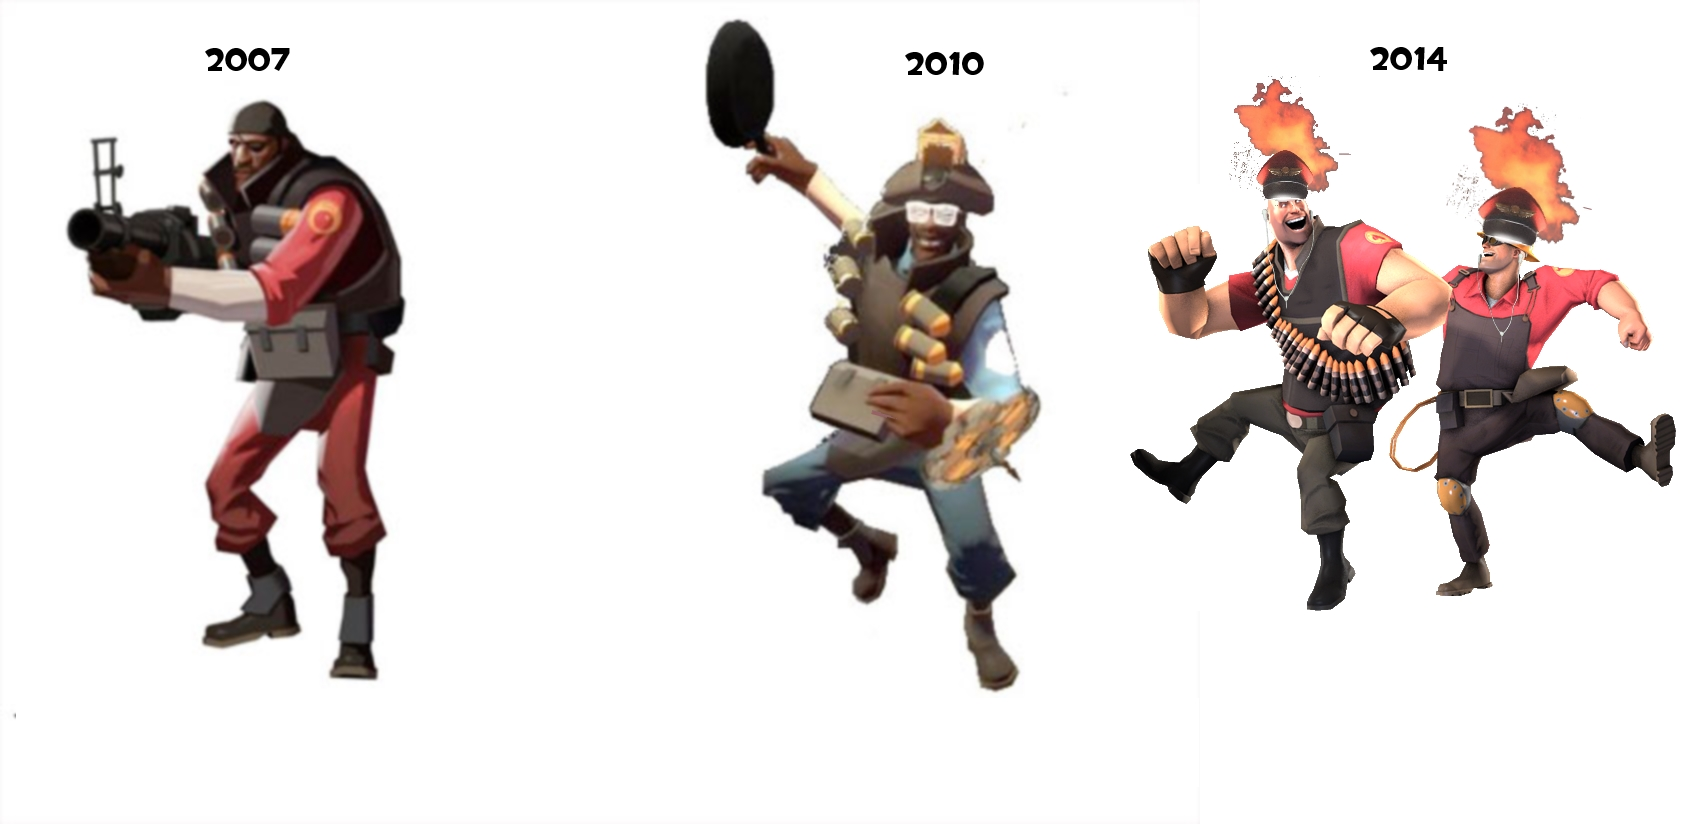 f65 evolution of tf2 2014 edition team fortress 2 know your meme